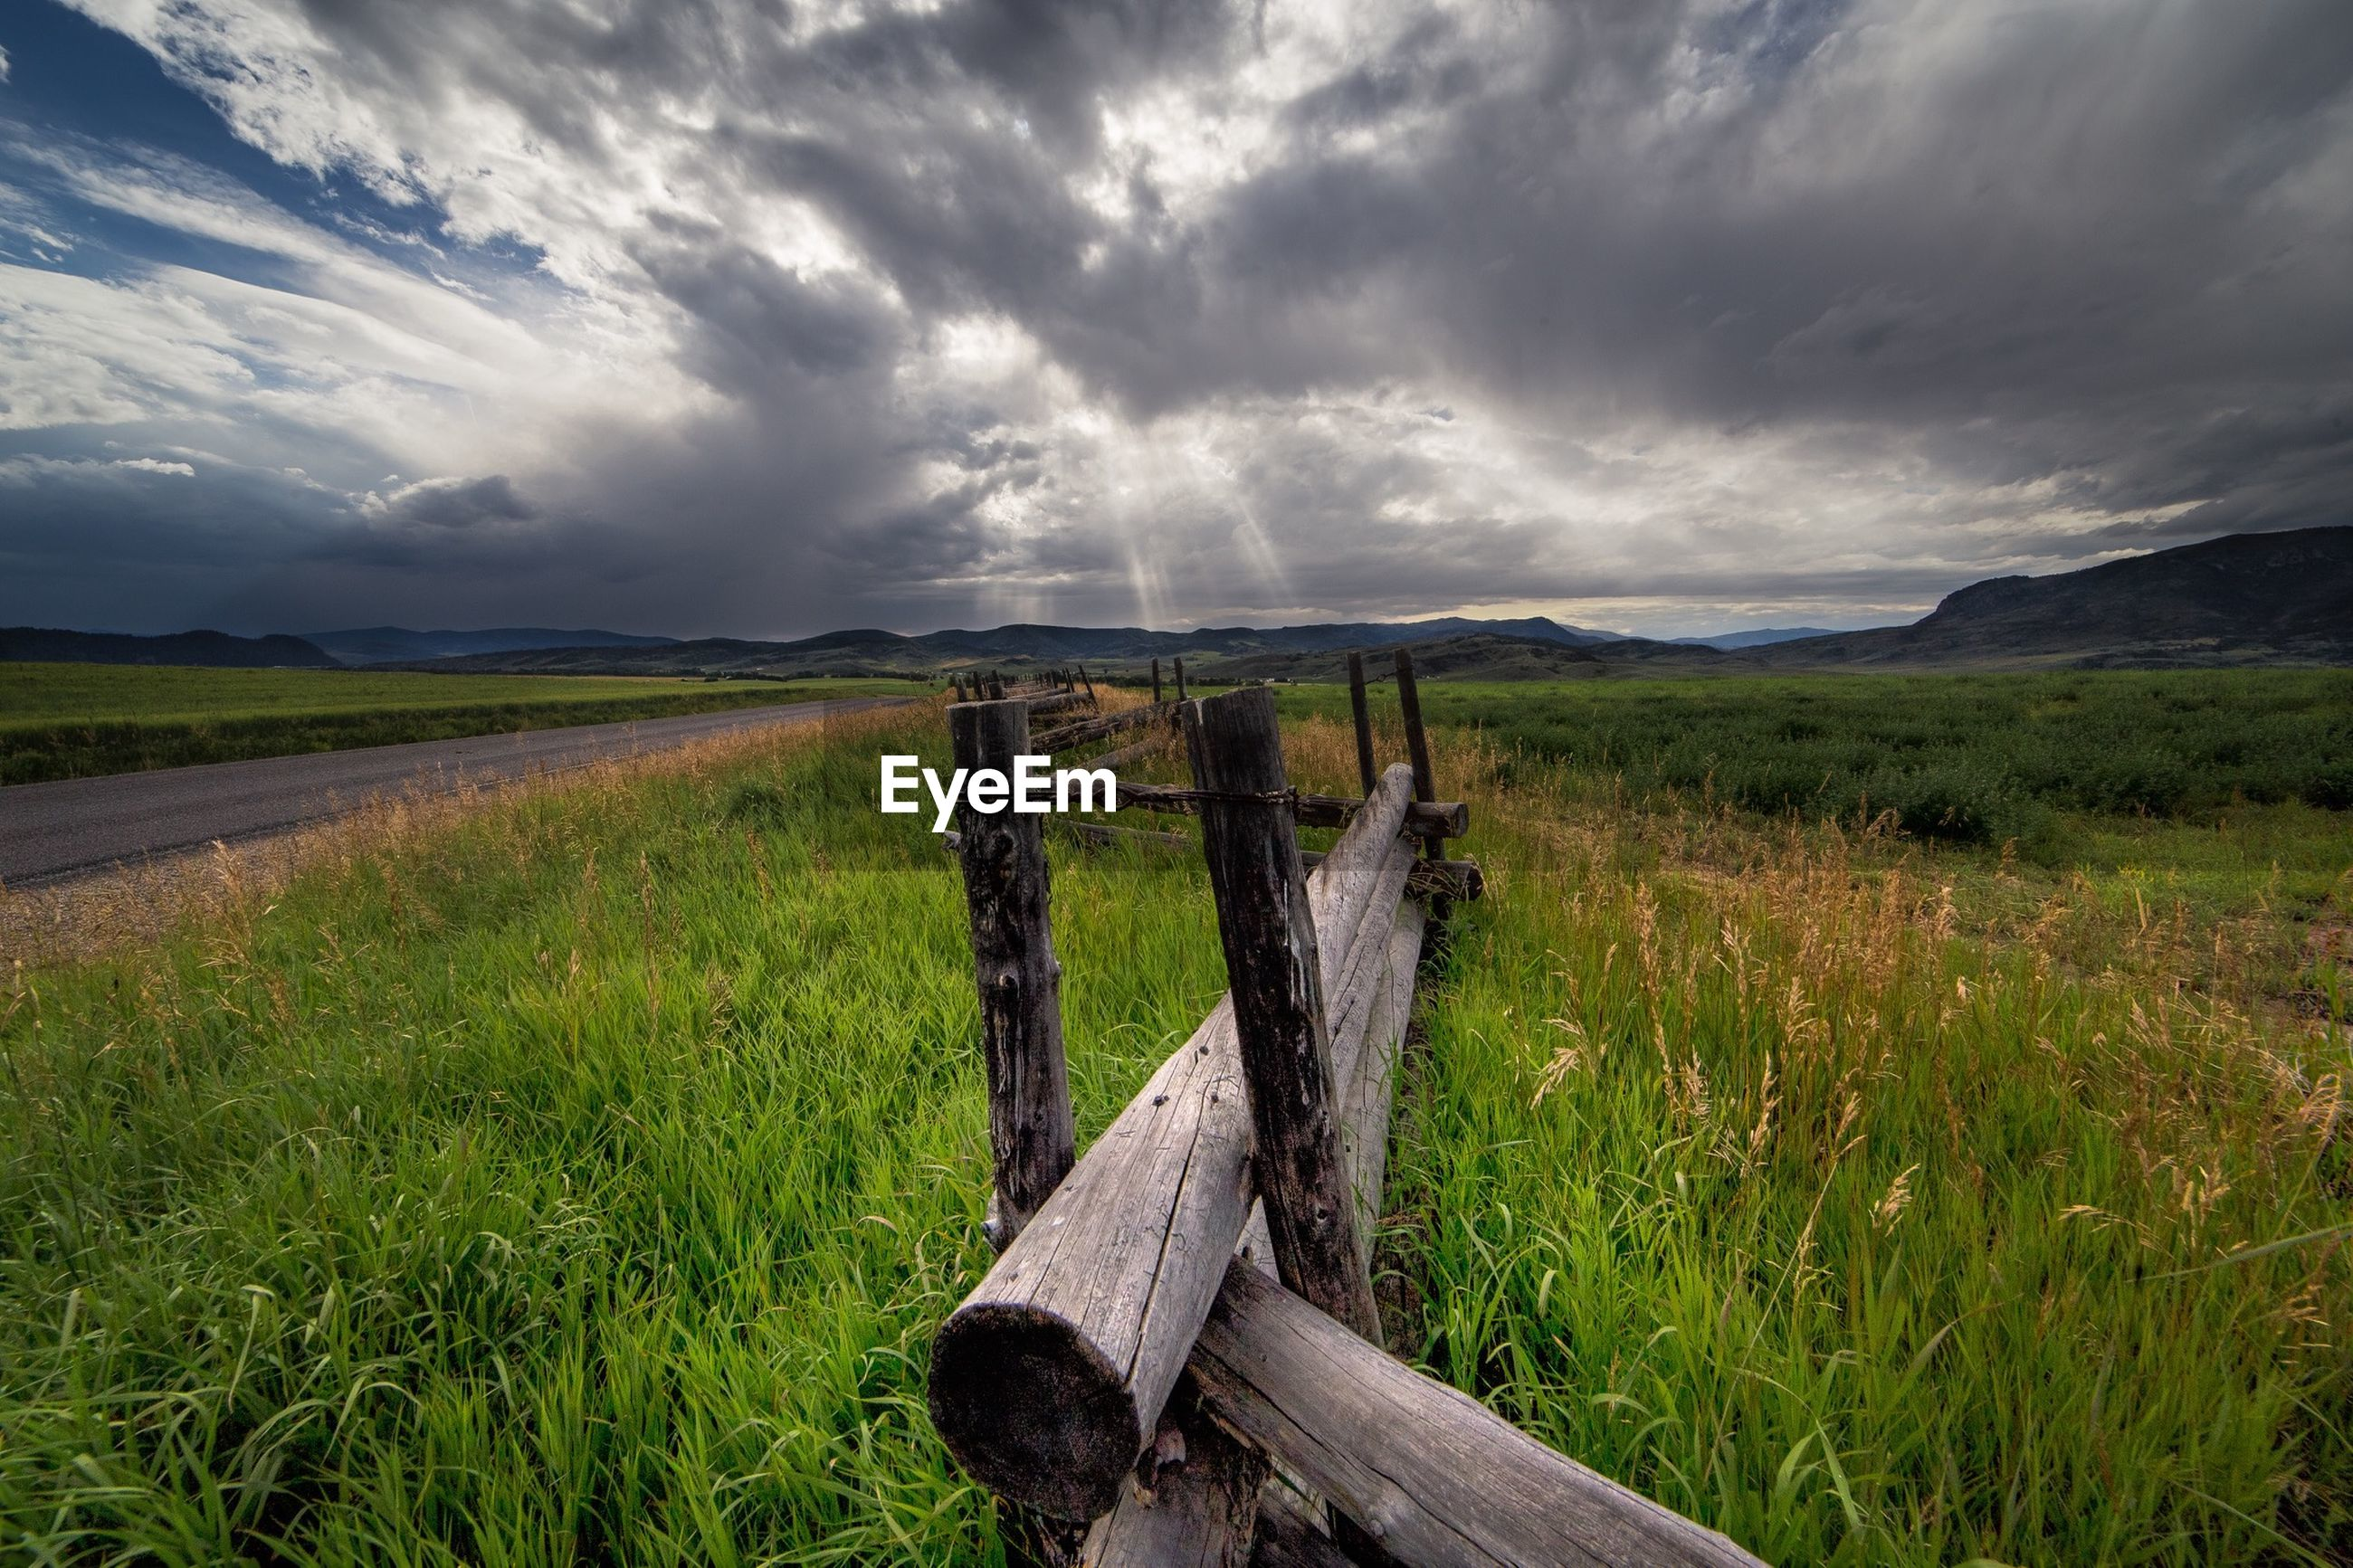 Wooden fence on field against cloudy sky